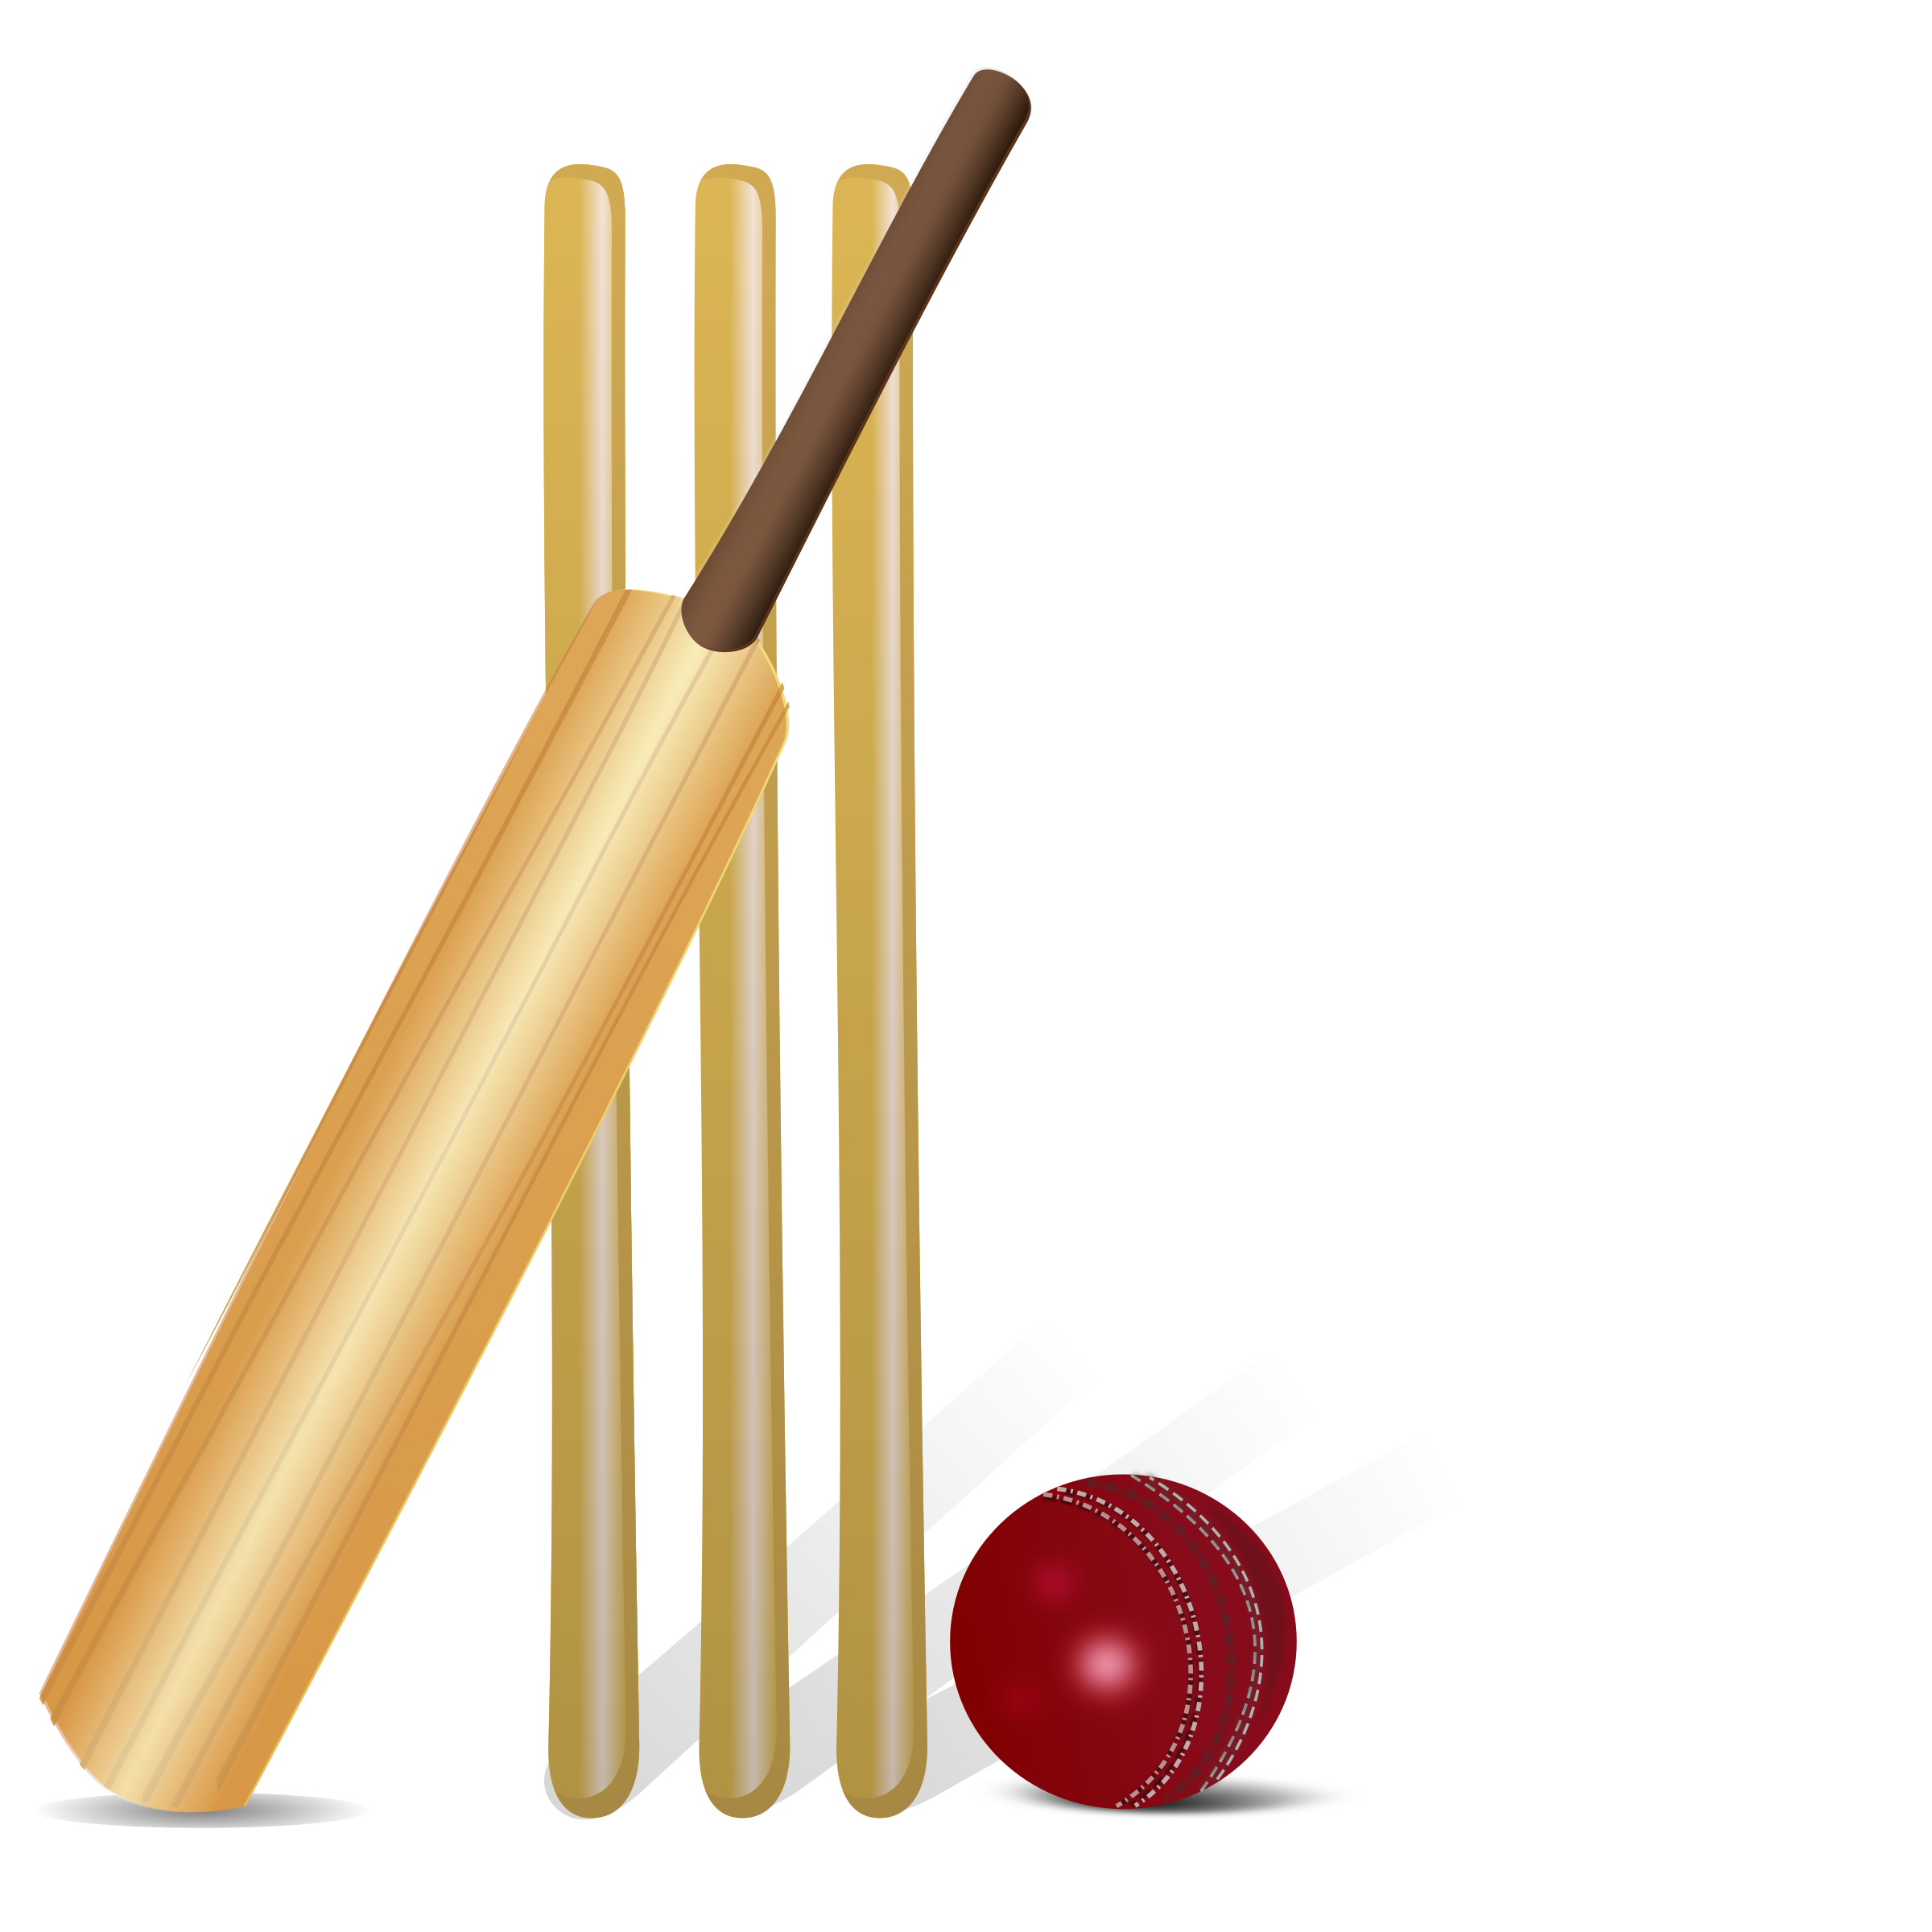 stamp clipart cricket